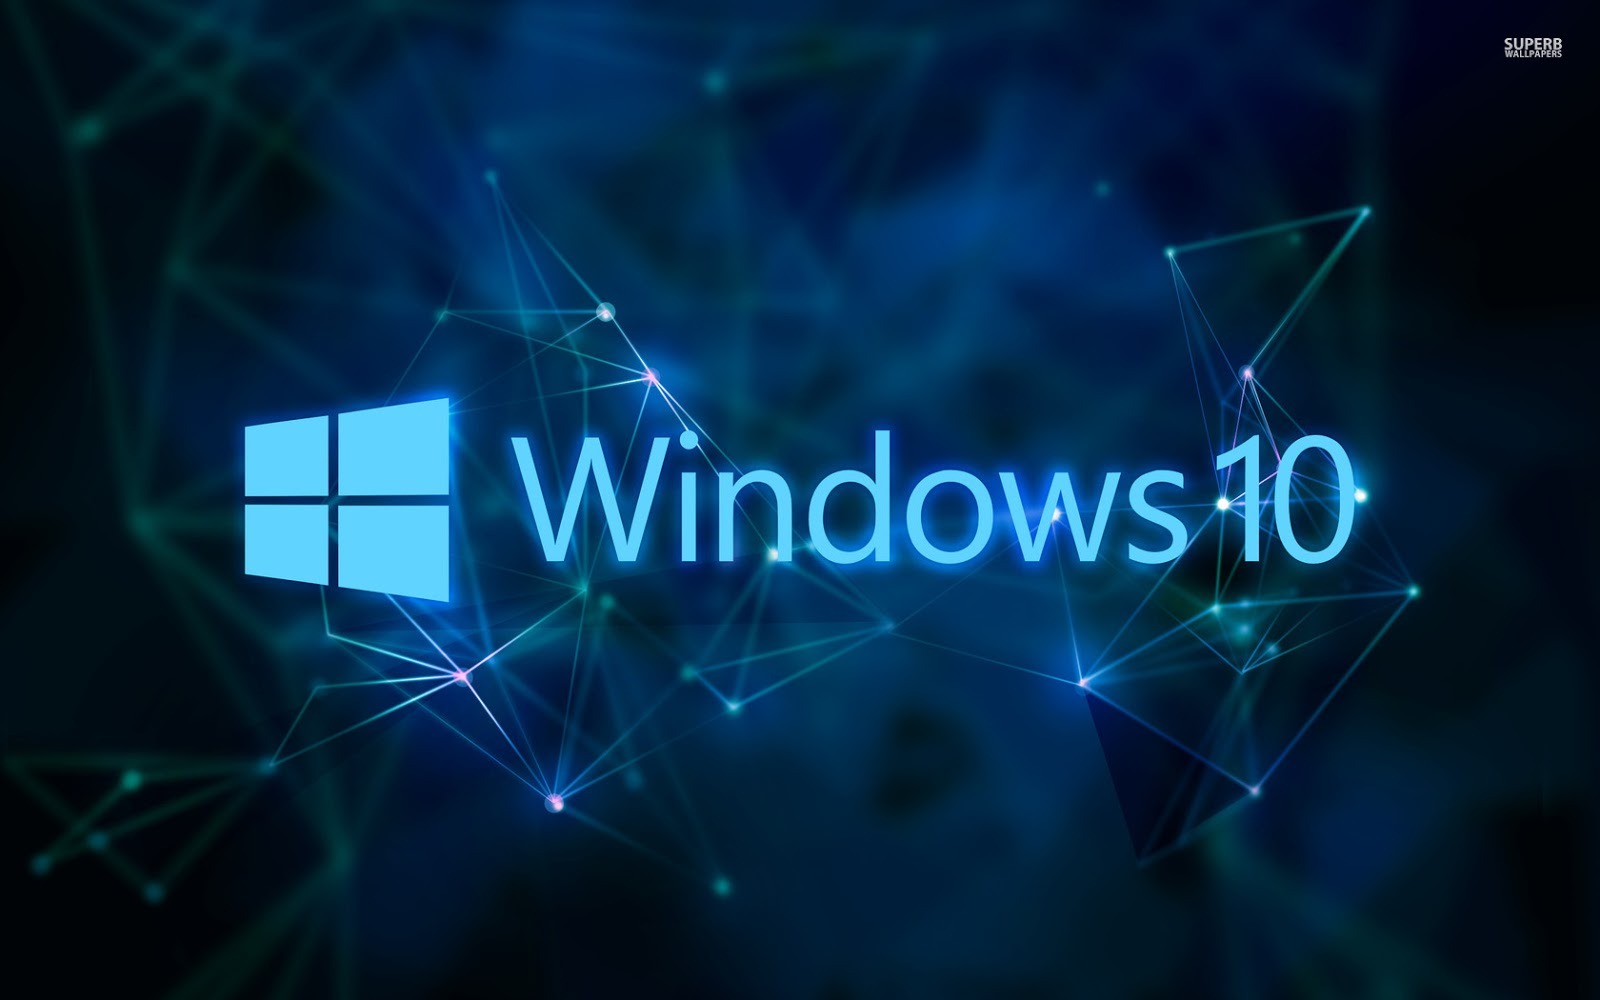 Download Windows 10 Pro 64 bit Official ISO File | …